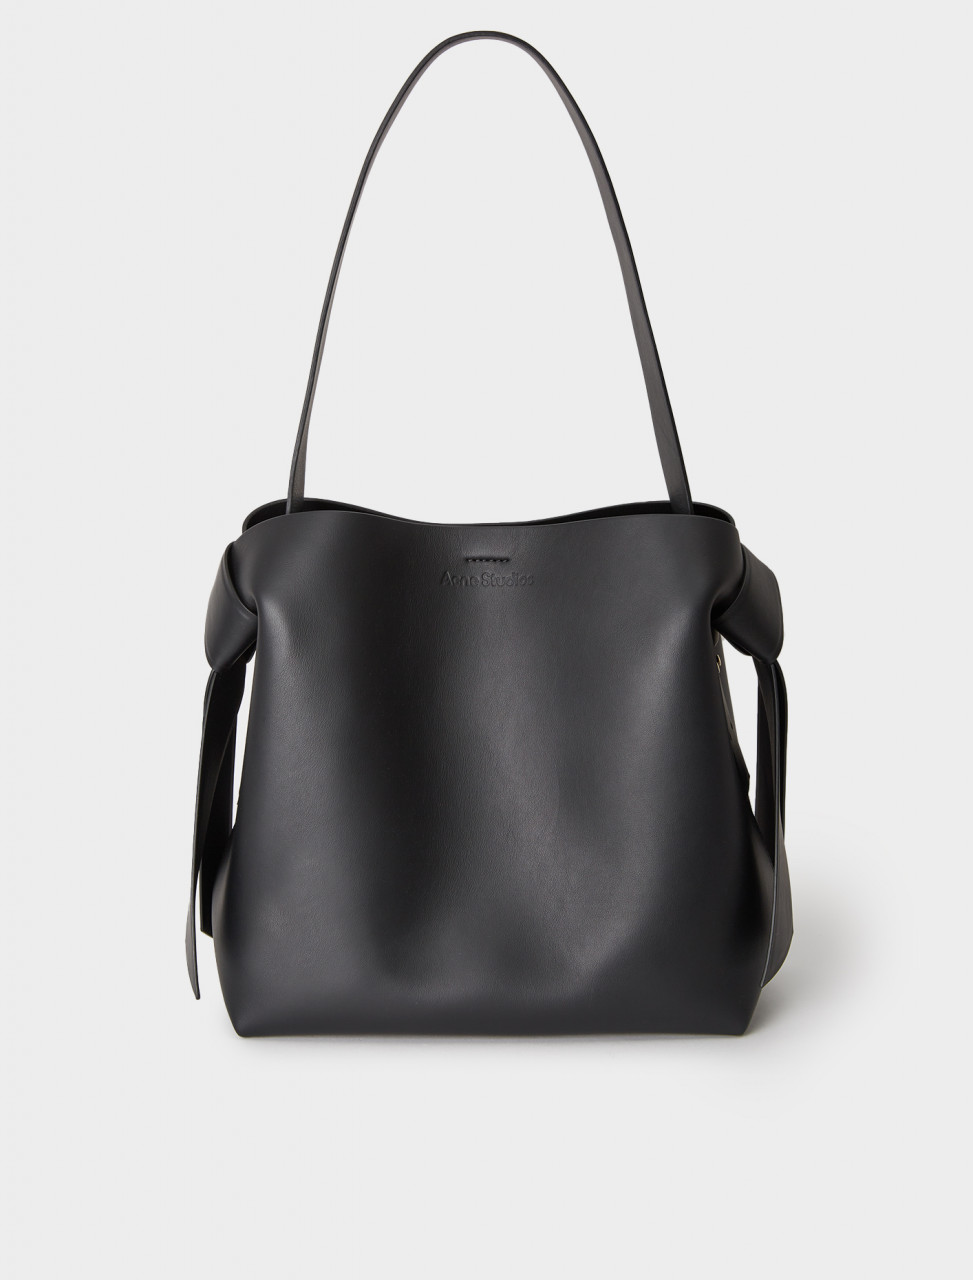 A10100-900 ACNE STUDIOS MEDIUM LEATHER HANDBAG BLACK